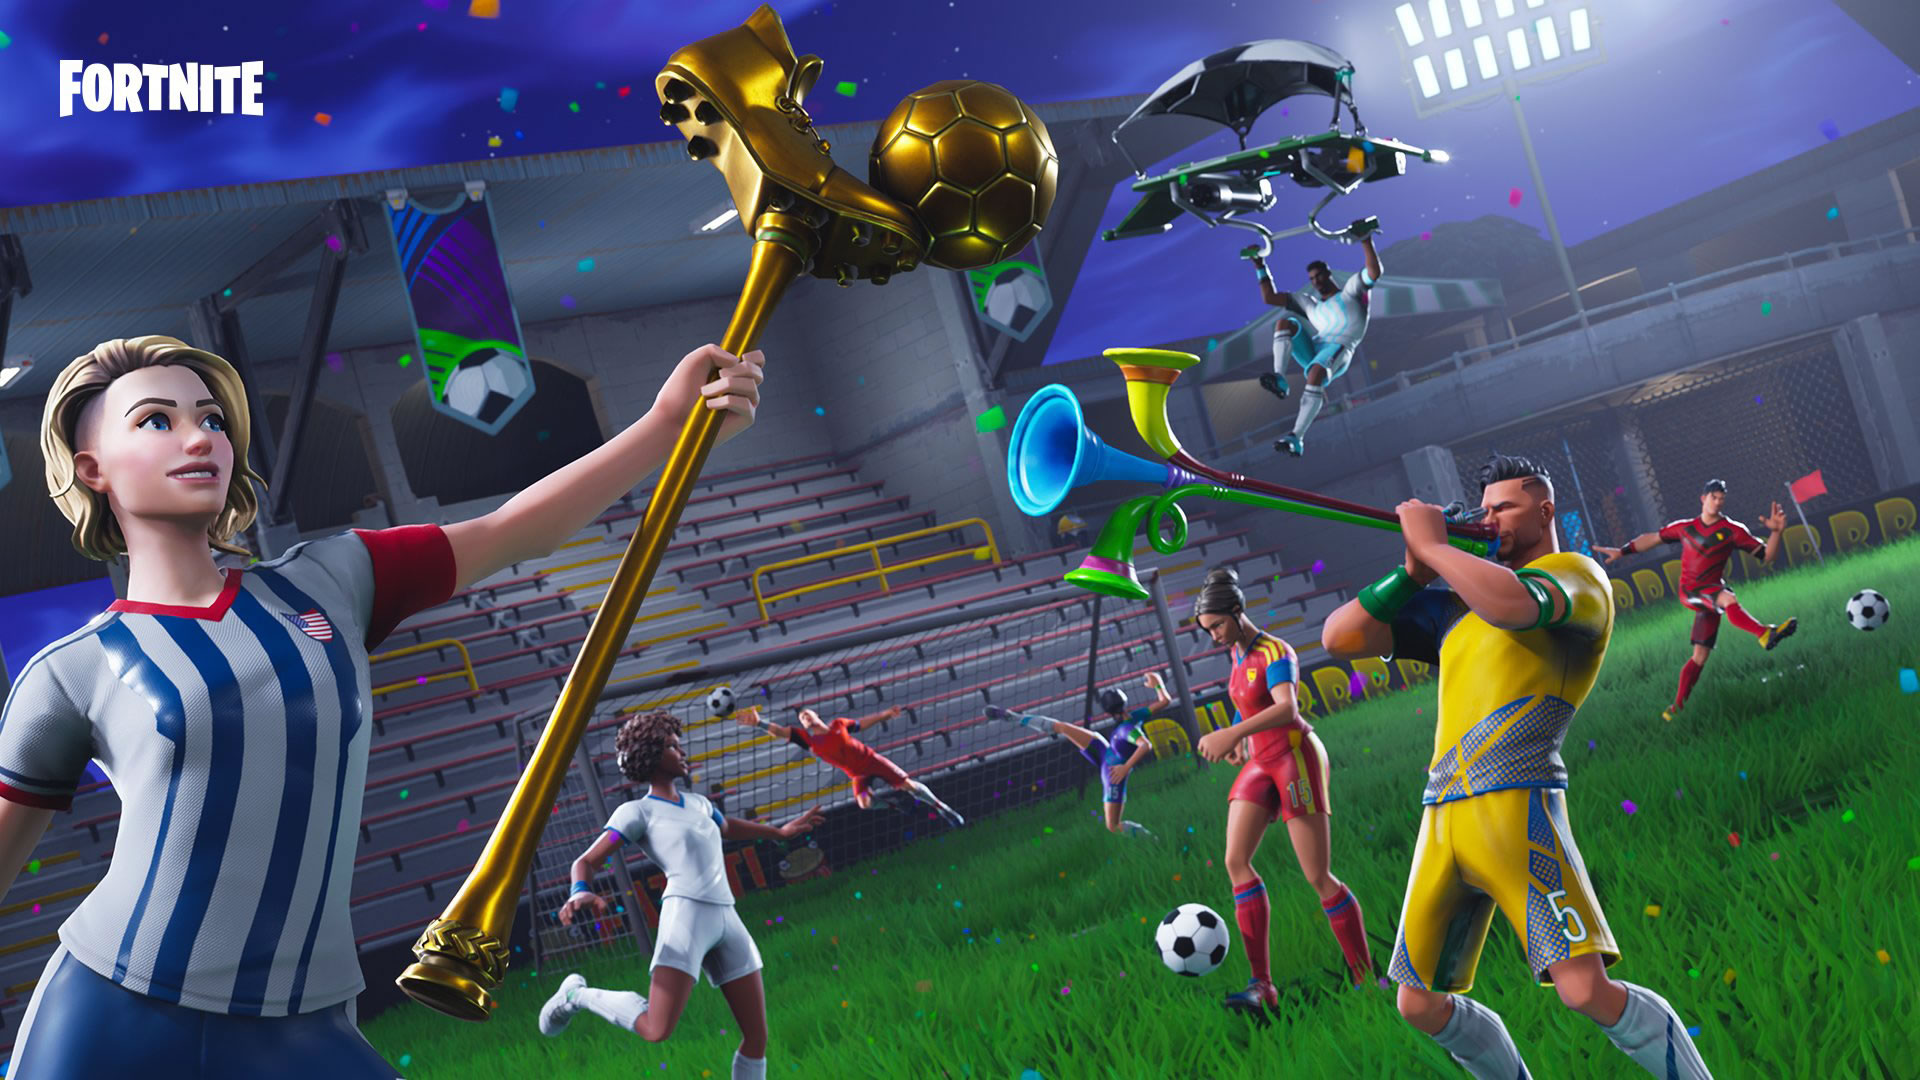 download wallpaper: Fortnite WK voetbal wallpaper